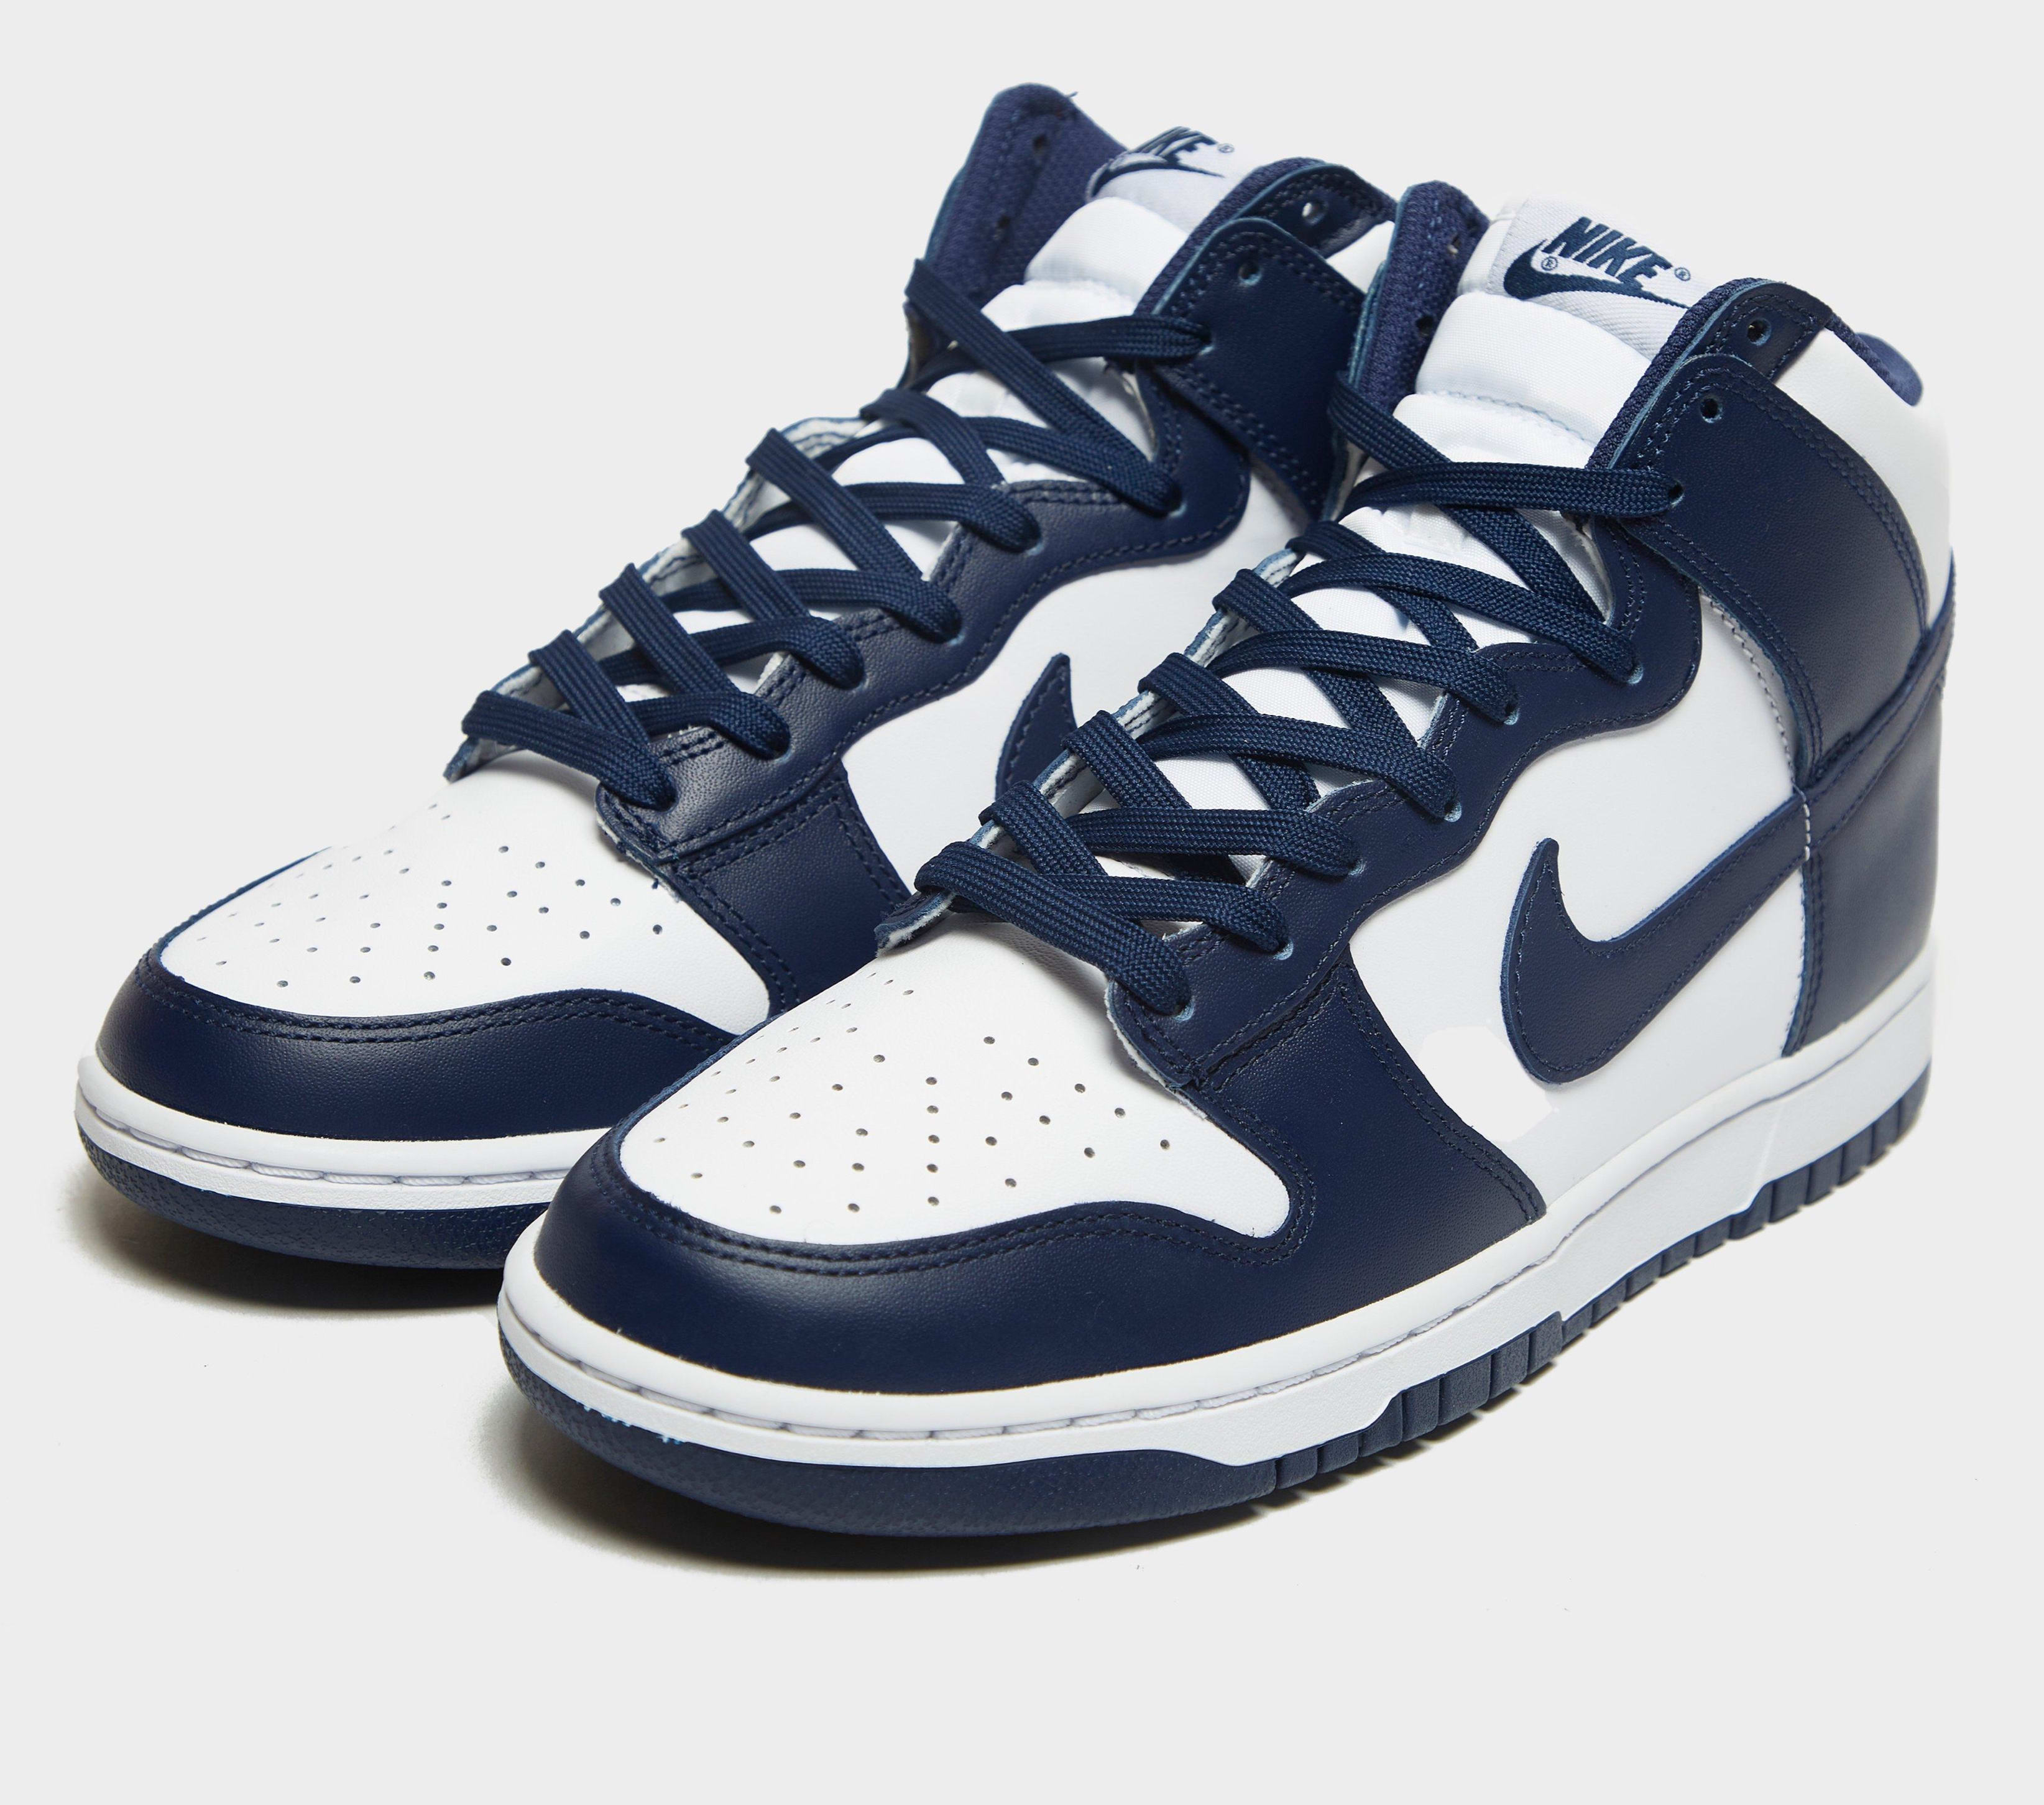 Nike Dunk High Midnight Navy 2021 Release Date Pair